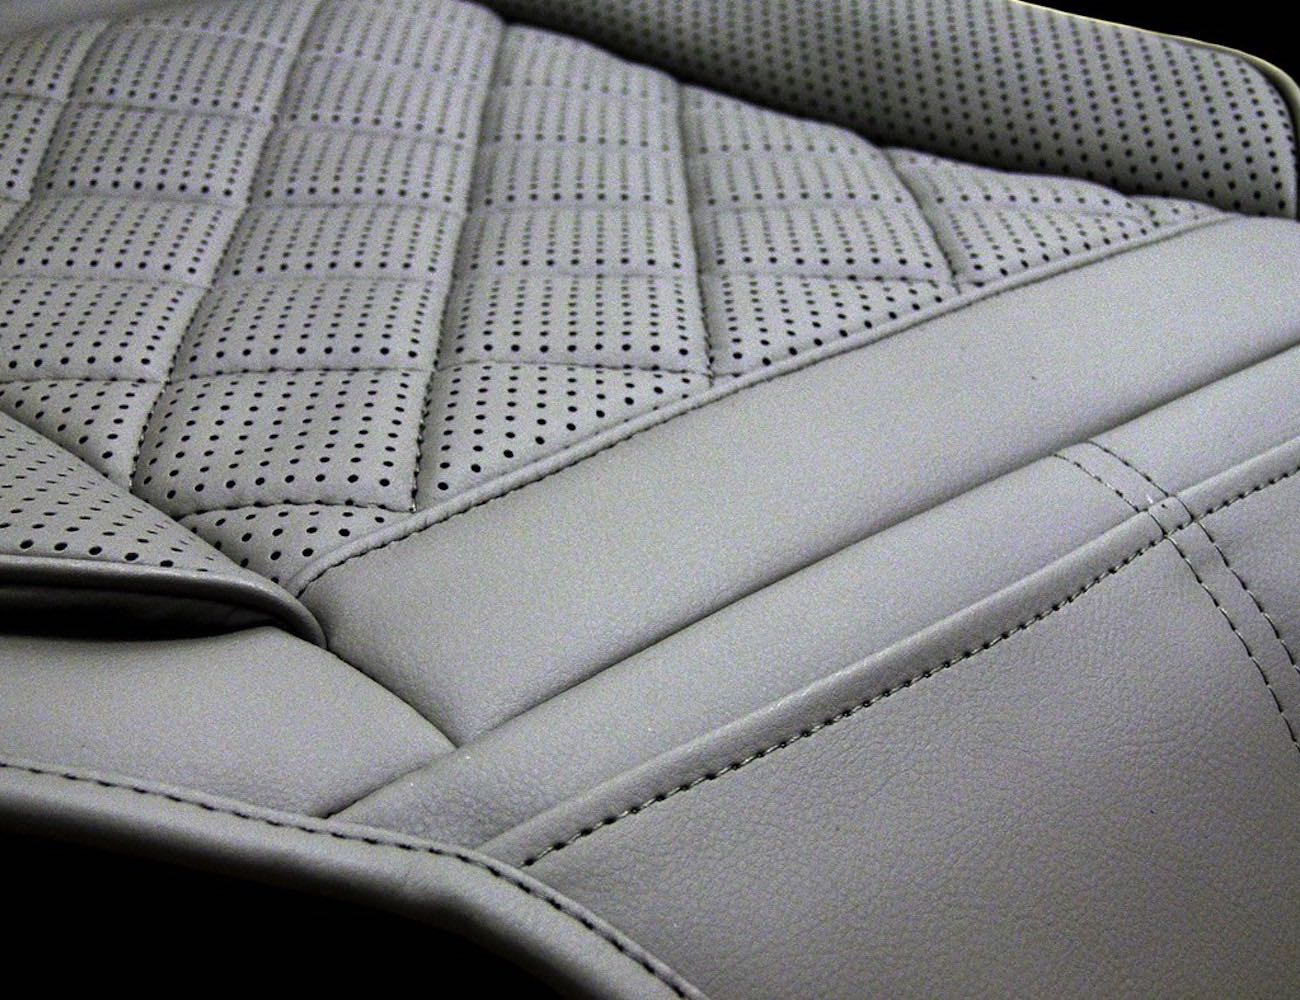 Viotek – Heating & Cooling Seat Cushion For Vehicles